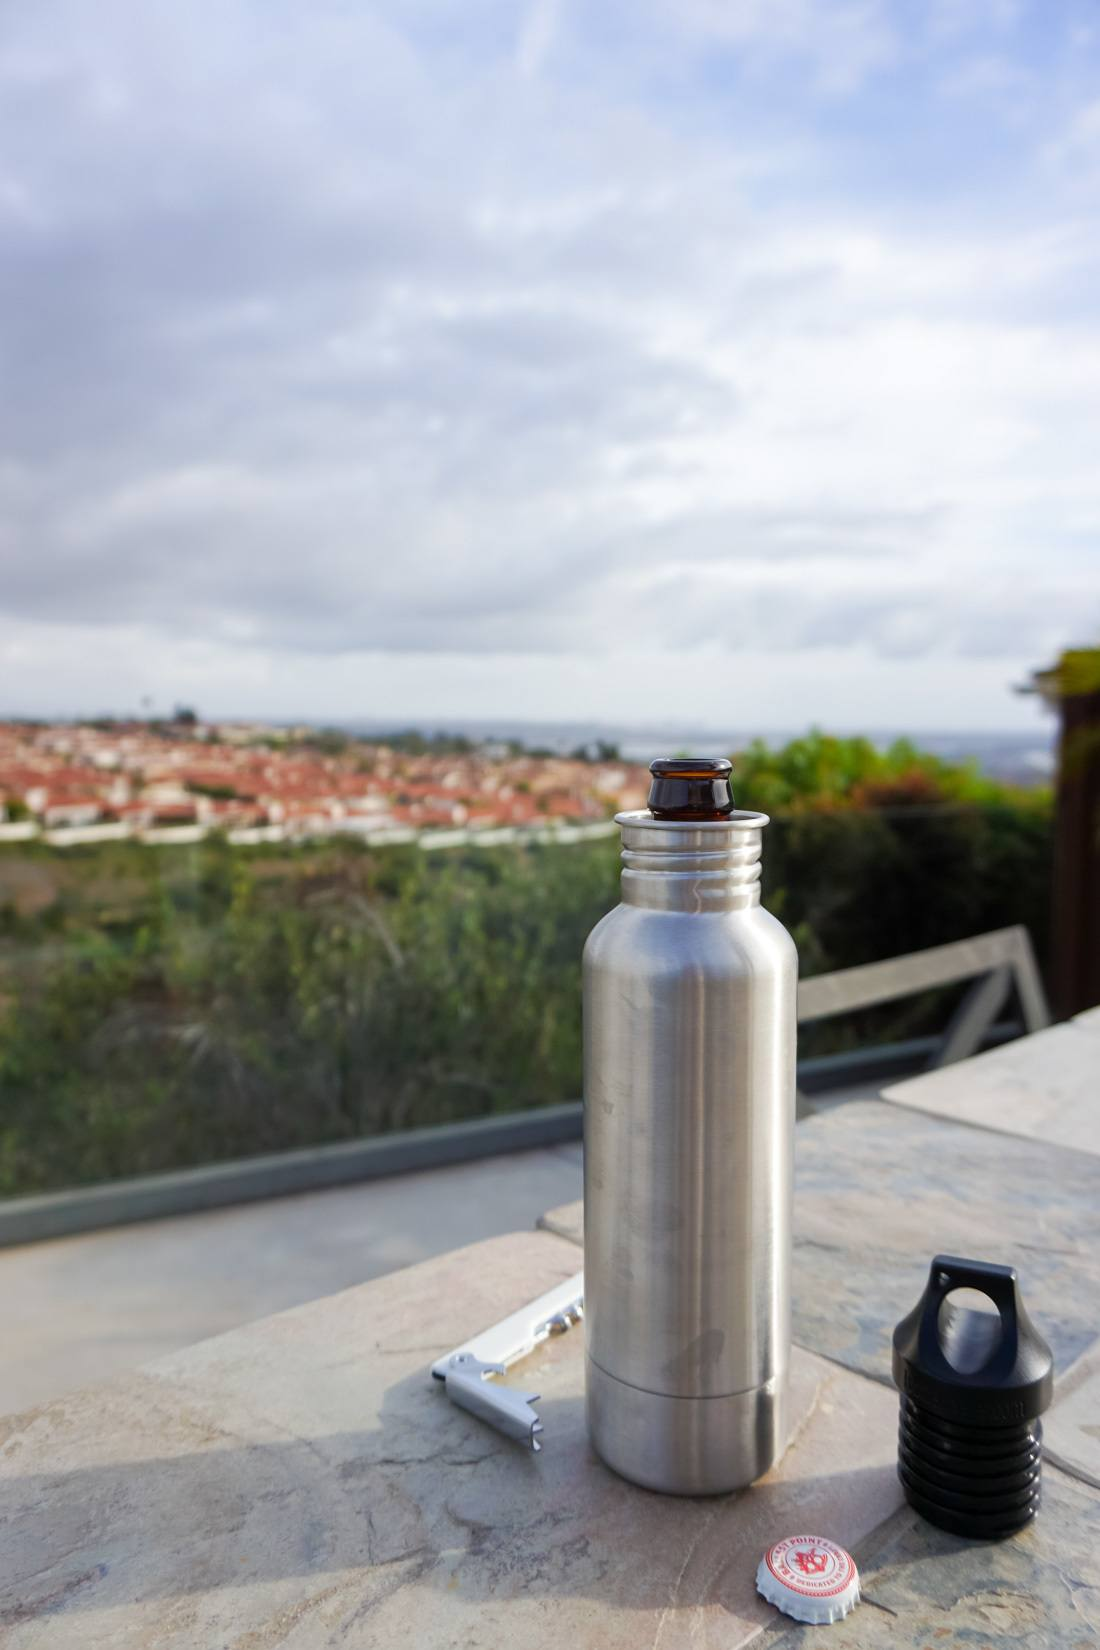 A Bottlekeeper helps keep beer chilled and safe from impact while being discreet.